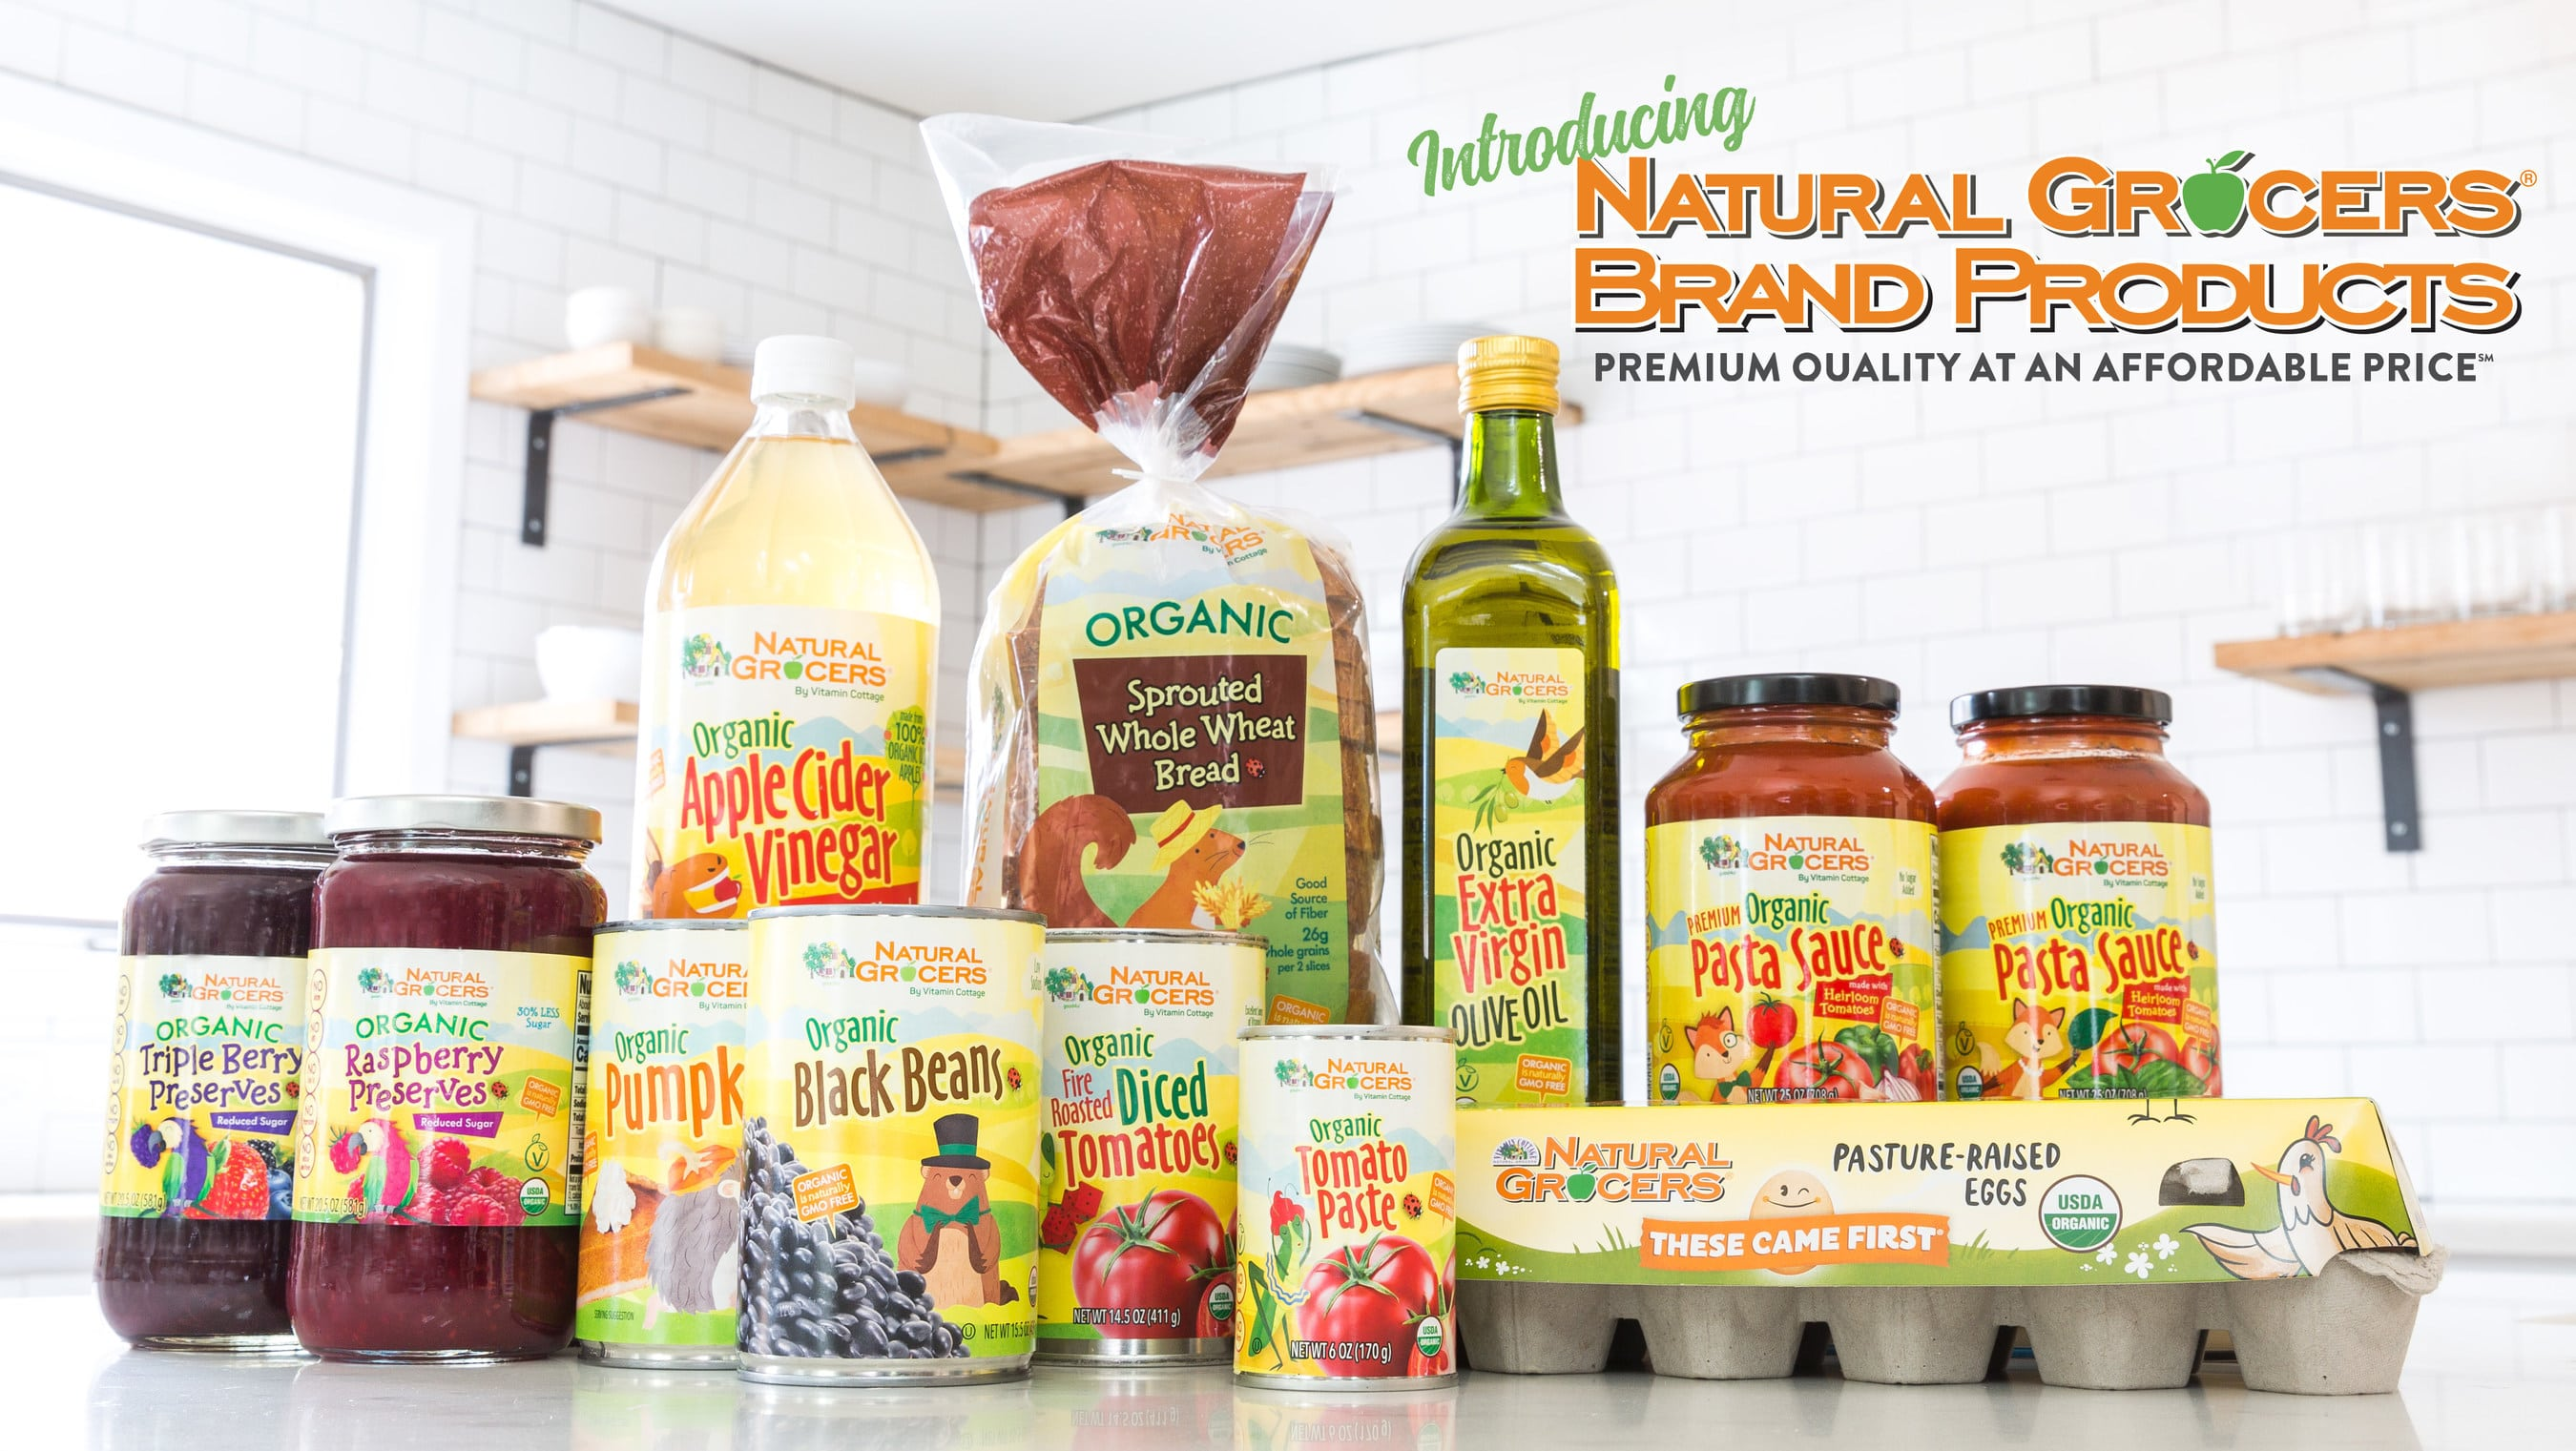 Natural Grocers Launches New Organic Private Label Products